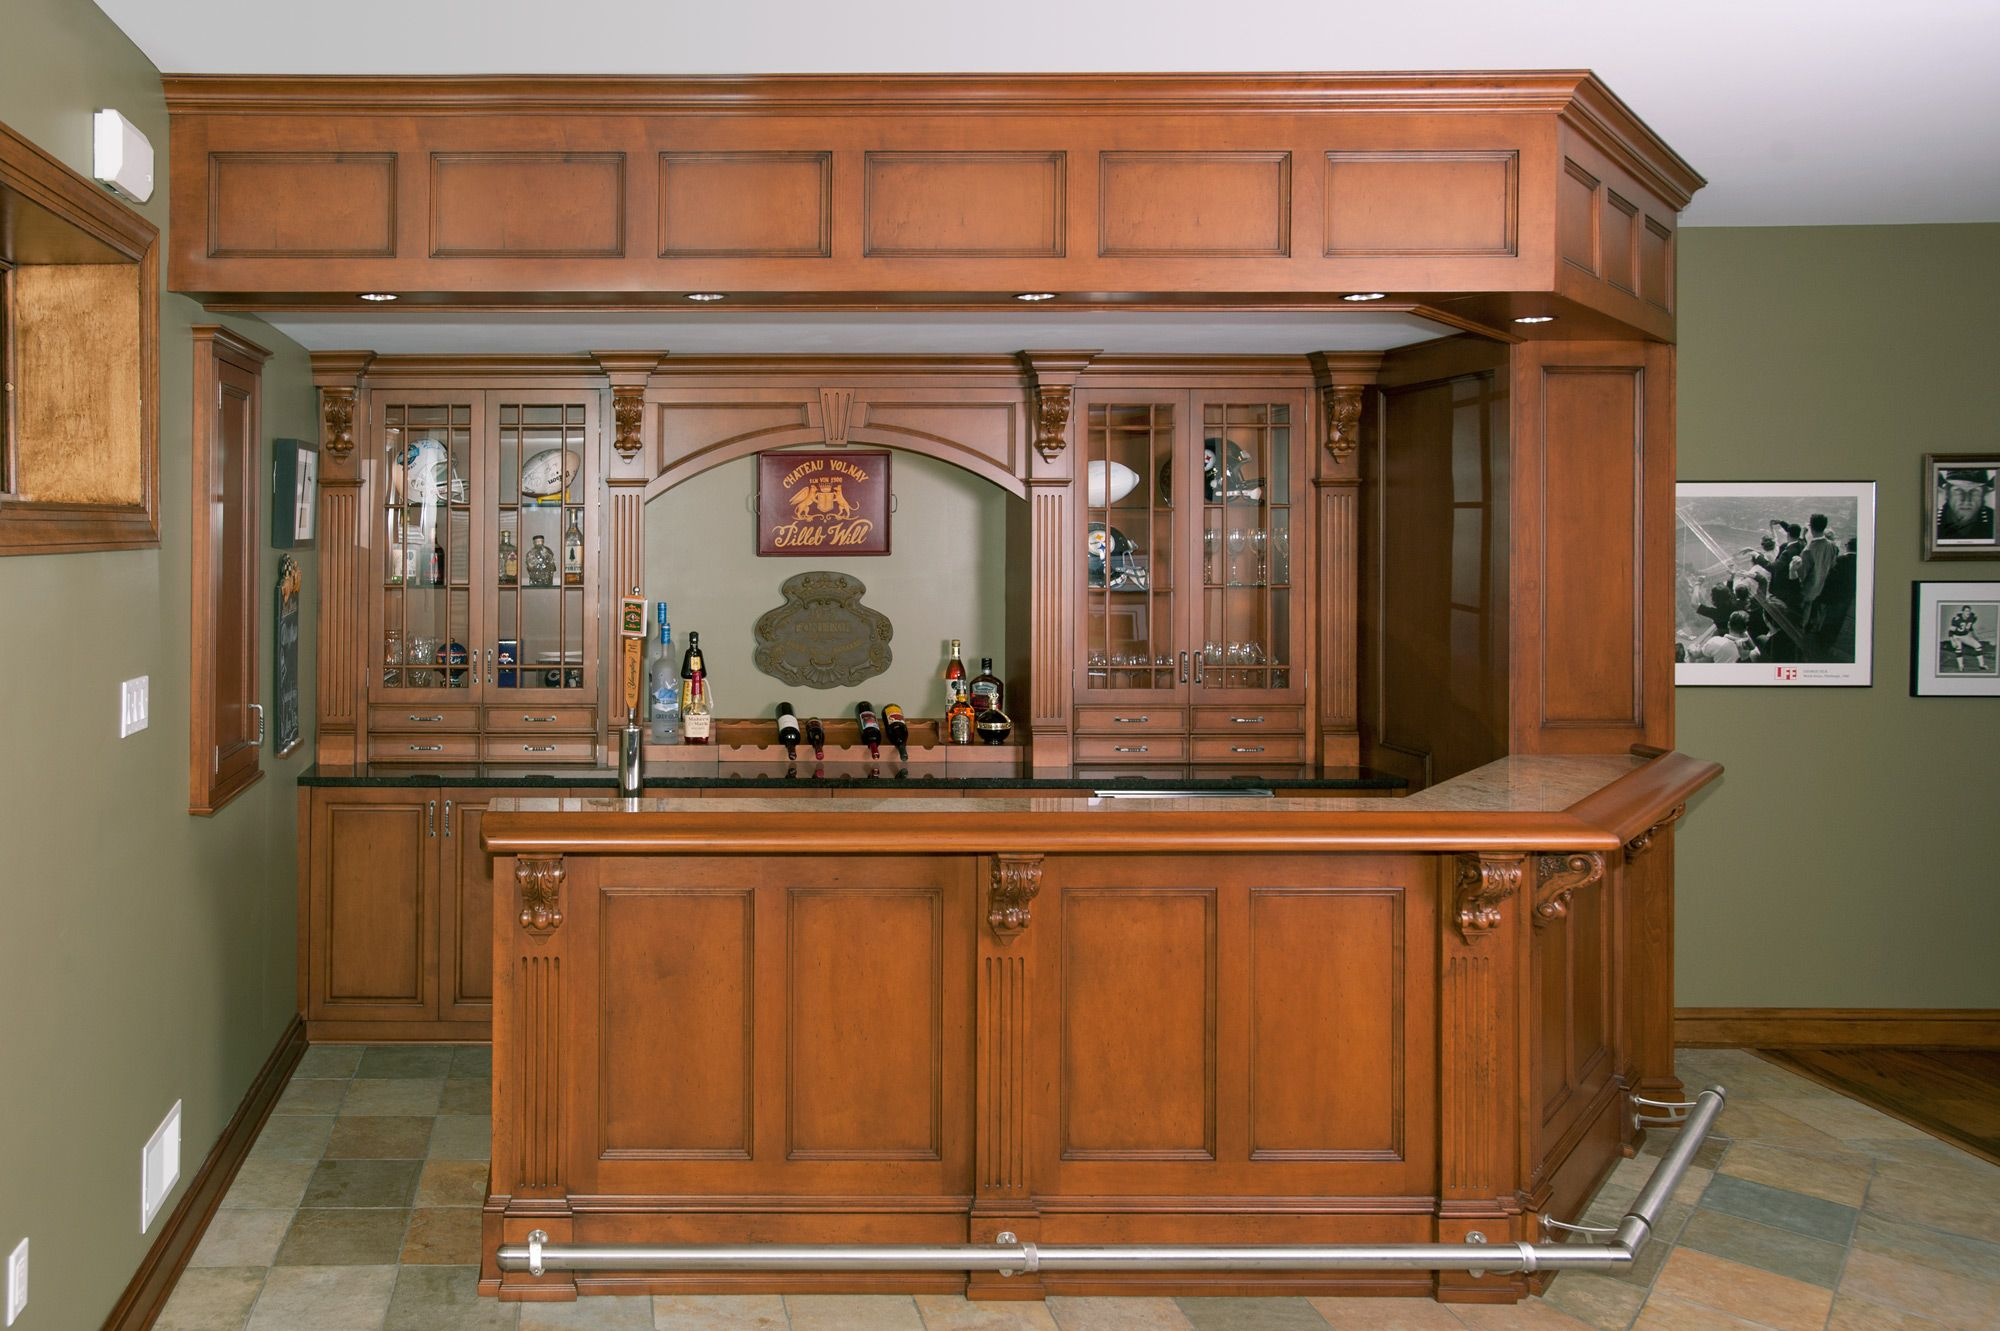 Irish pub style inspired home bar with a clipped angled corner and ...